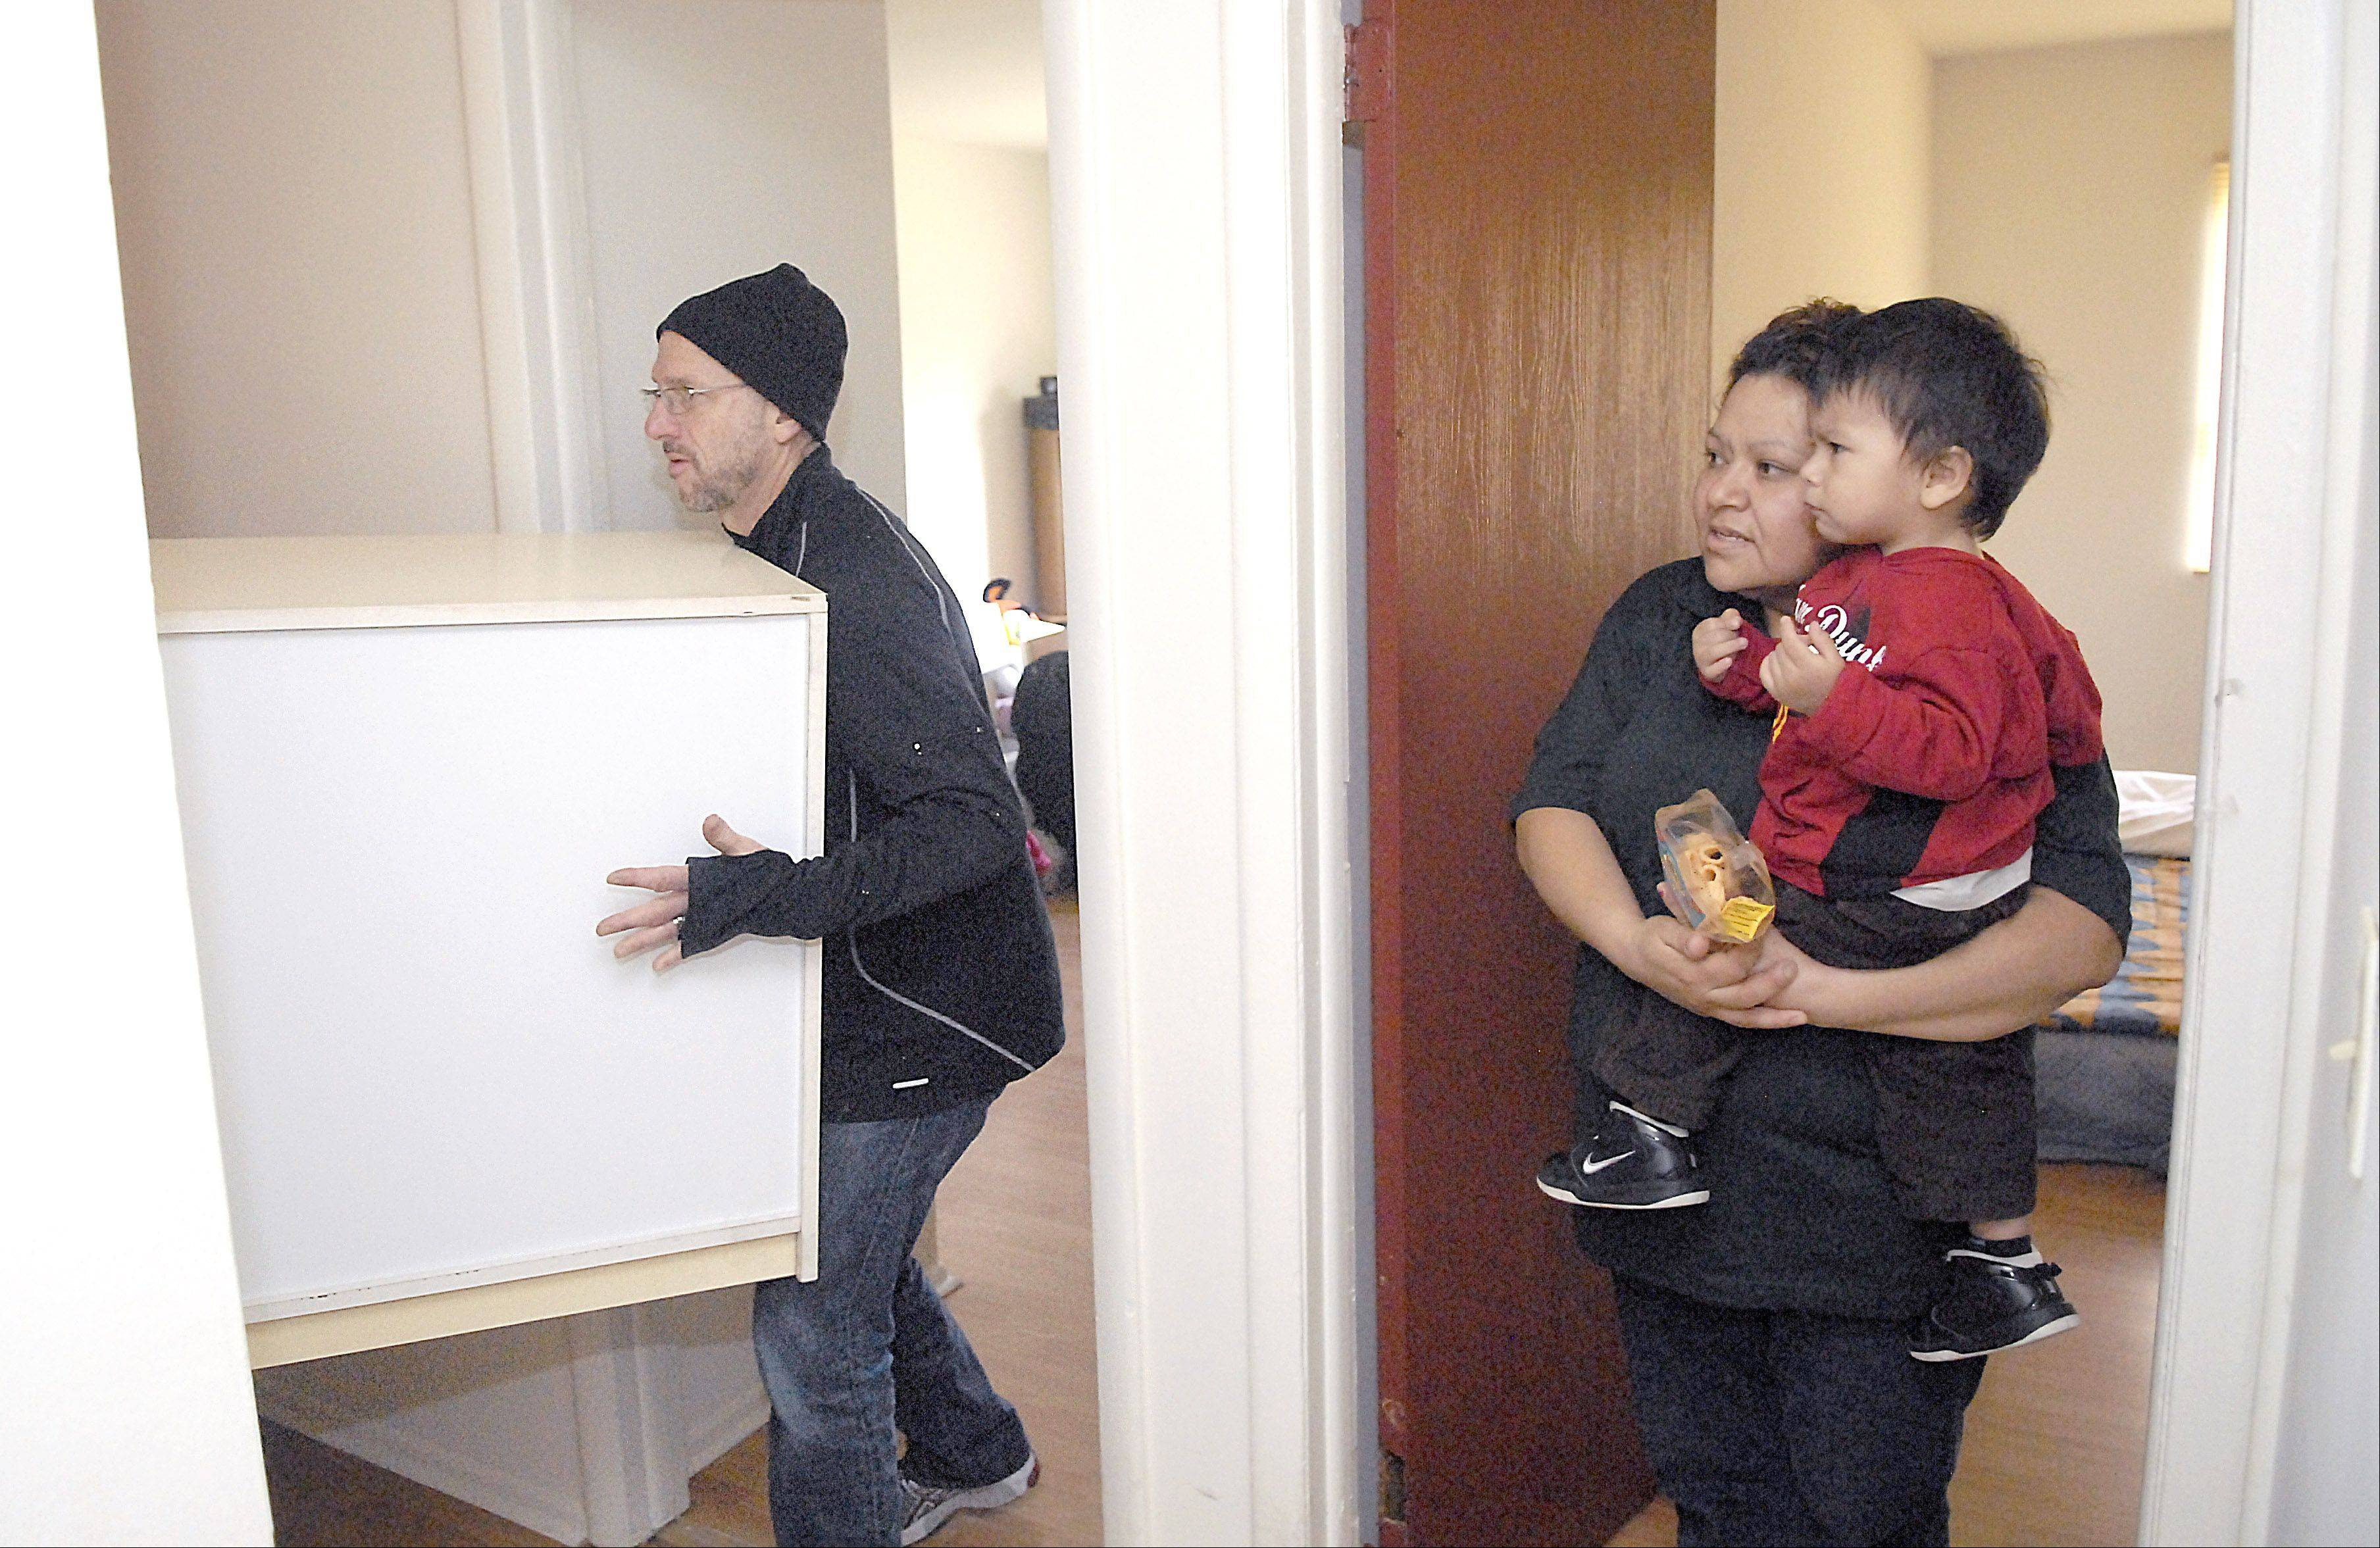 Juana Beltran holds her son, Alexis, 2, and watches as the Rev. Jeff Walser of Wheaton Bible Church helps move furniture into her apartment at the Timber Lakes complex in West Chicago on Saturday. Eight families were living in the apartments damaged by a fire on Nov. 4. Community Outreach Ministries and Wheaton Bible Church worked with the West Chicago community to gather and fund the replacement furniture.